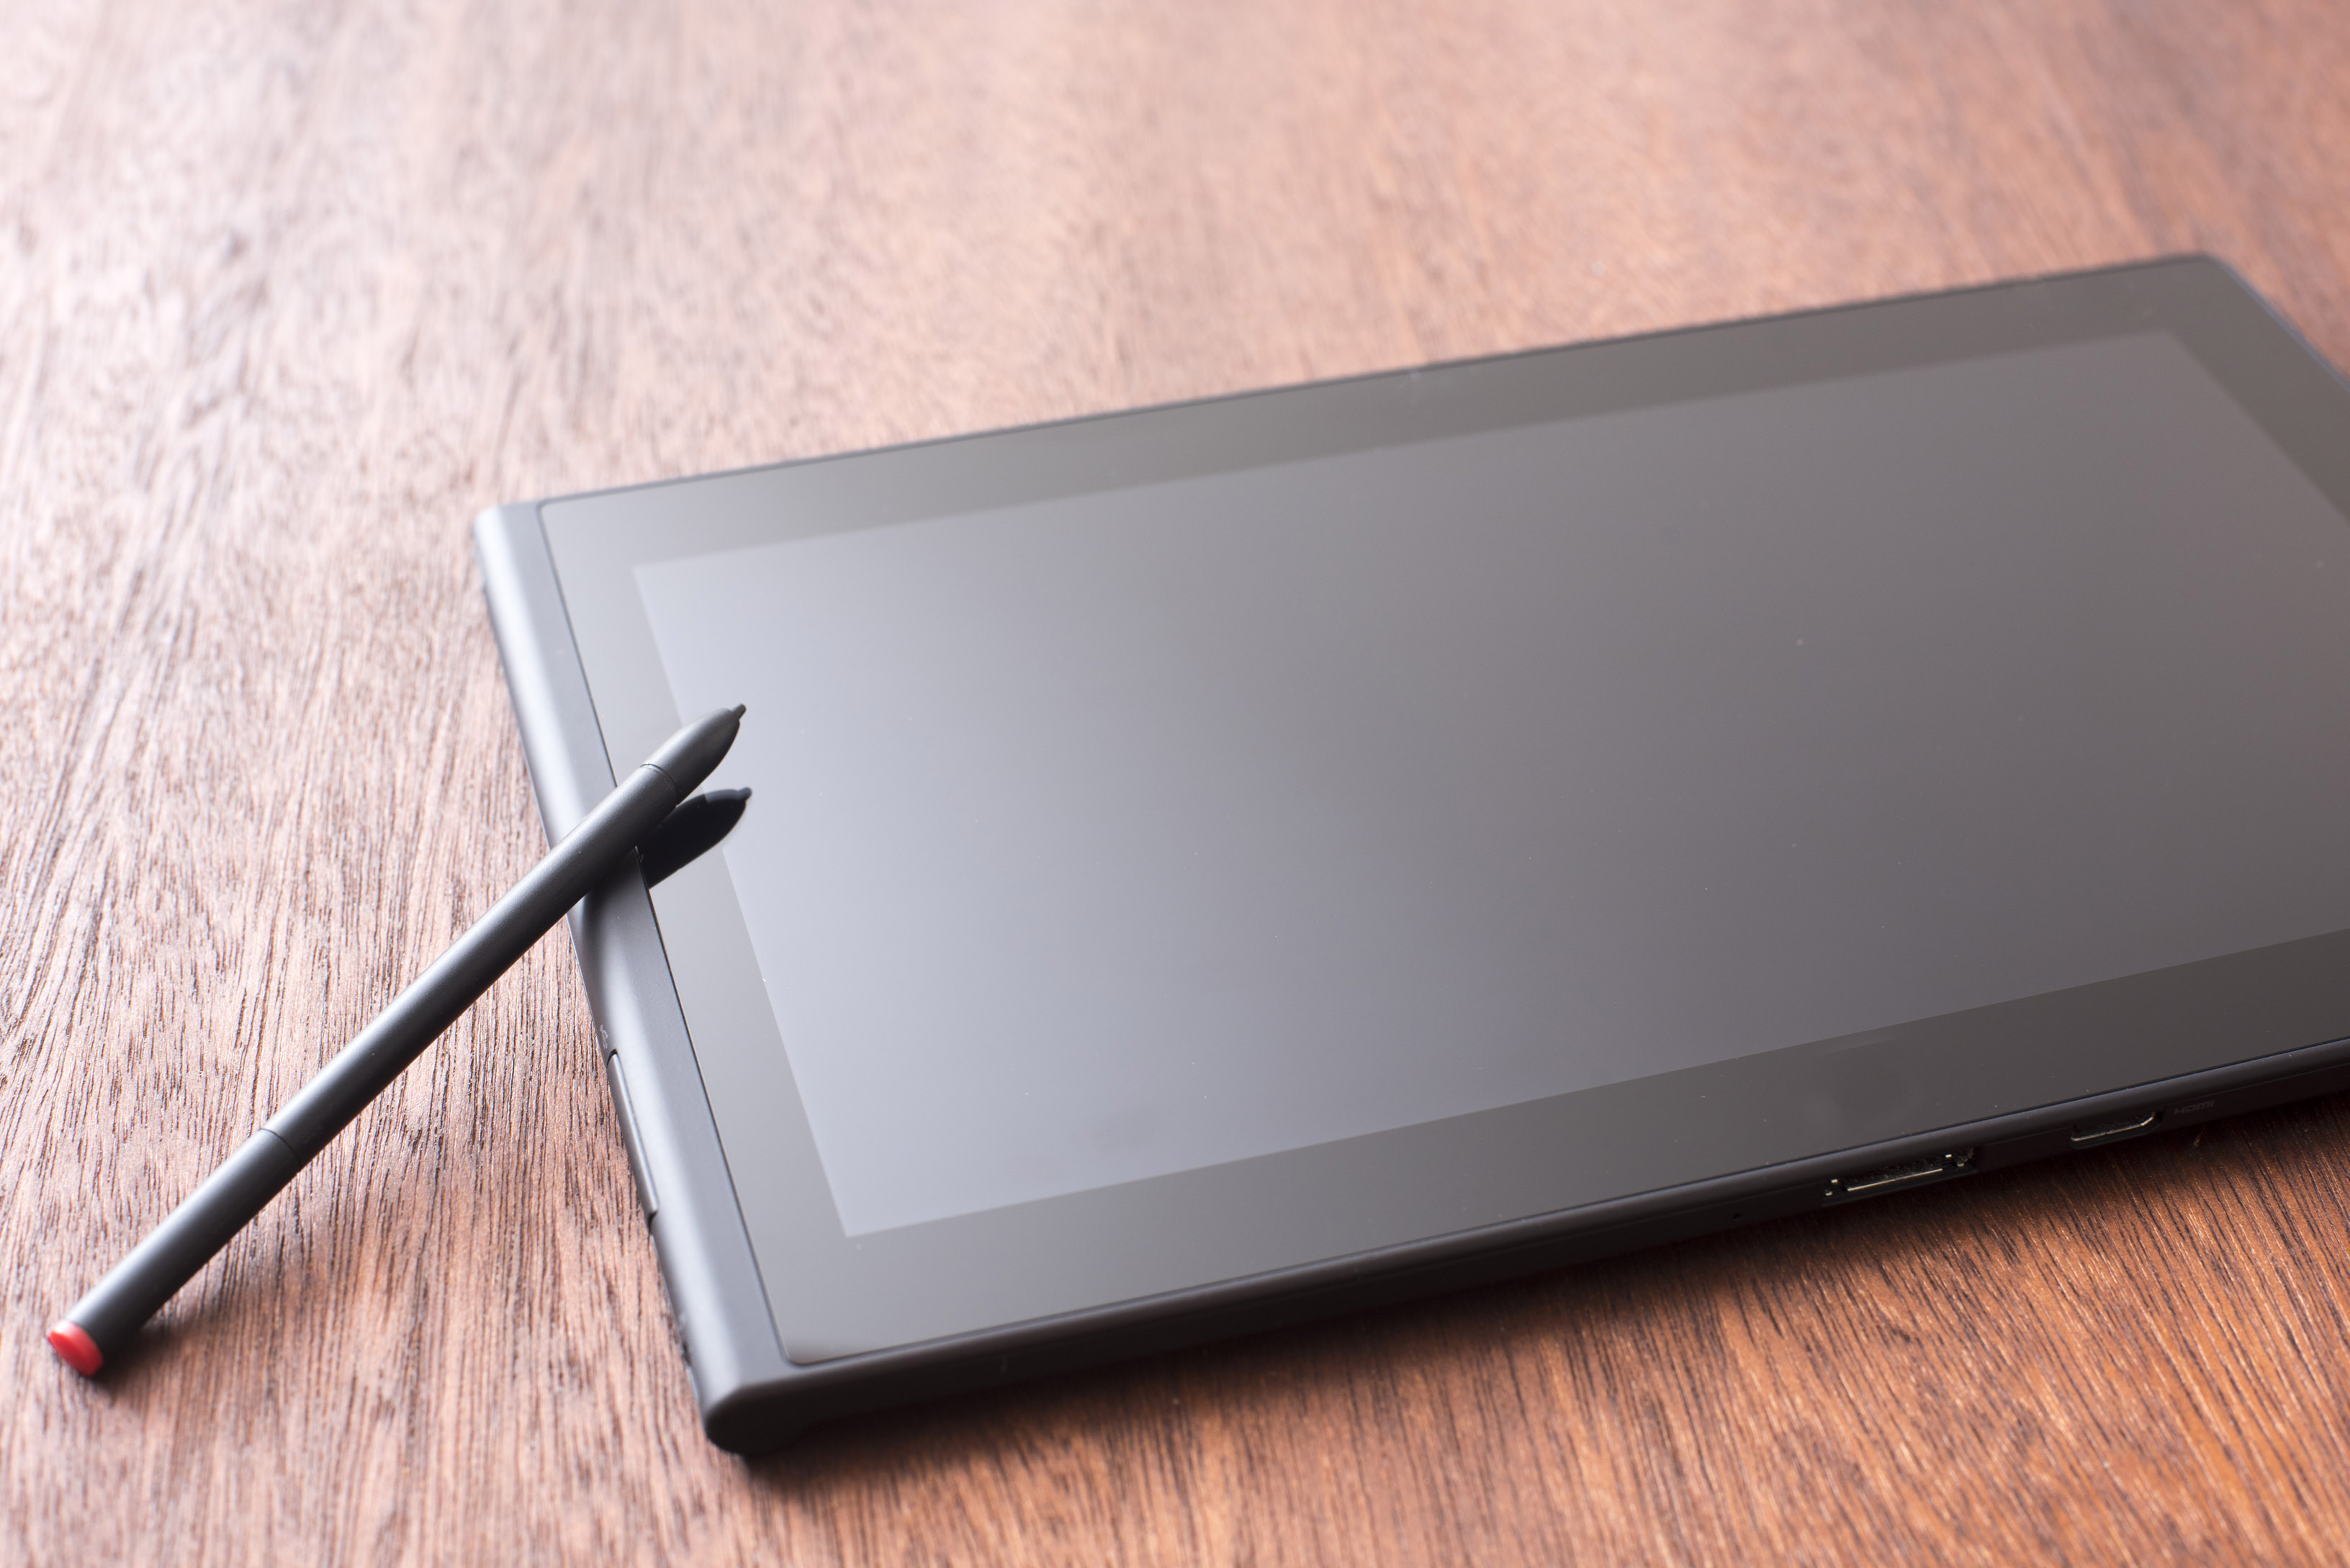 Blank digital tablet with a stylus resting on the side lying on a wooden desk in an oblique angle view